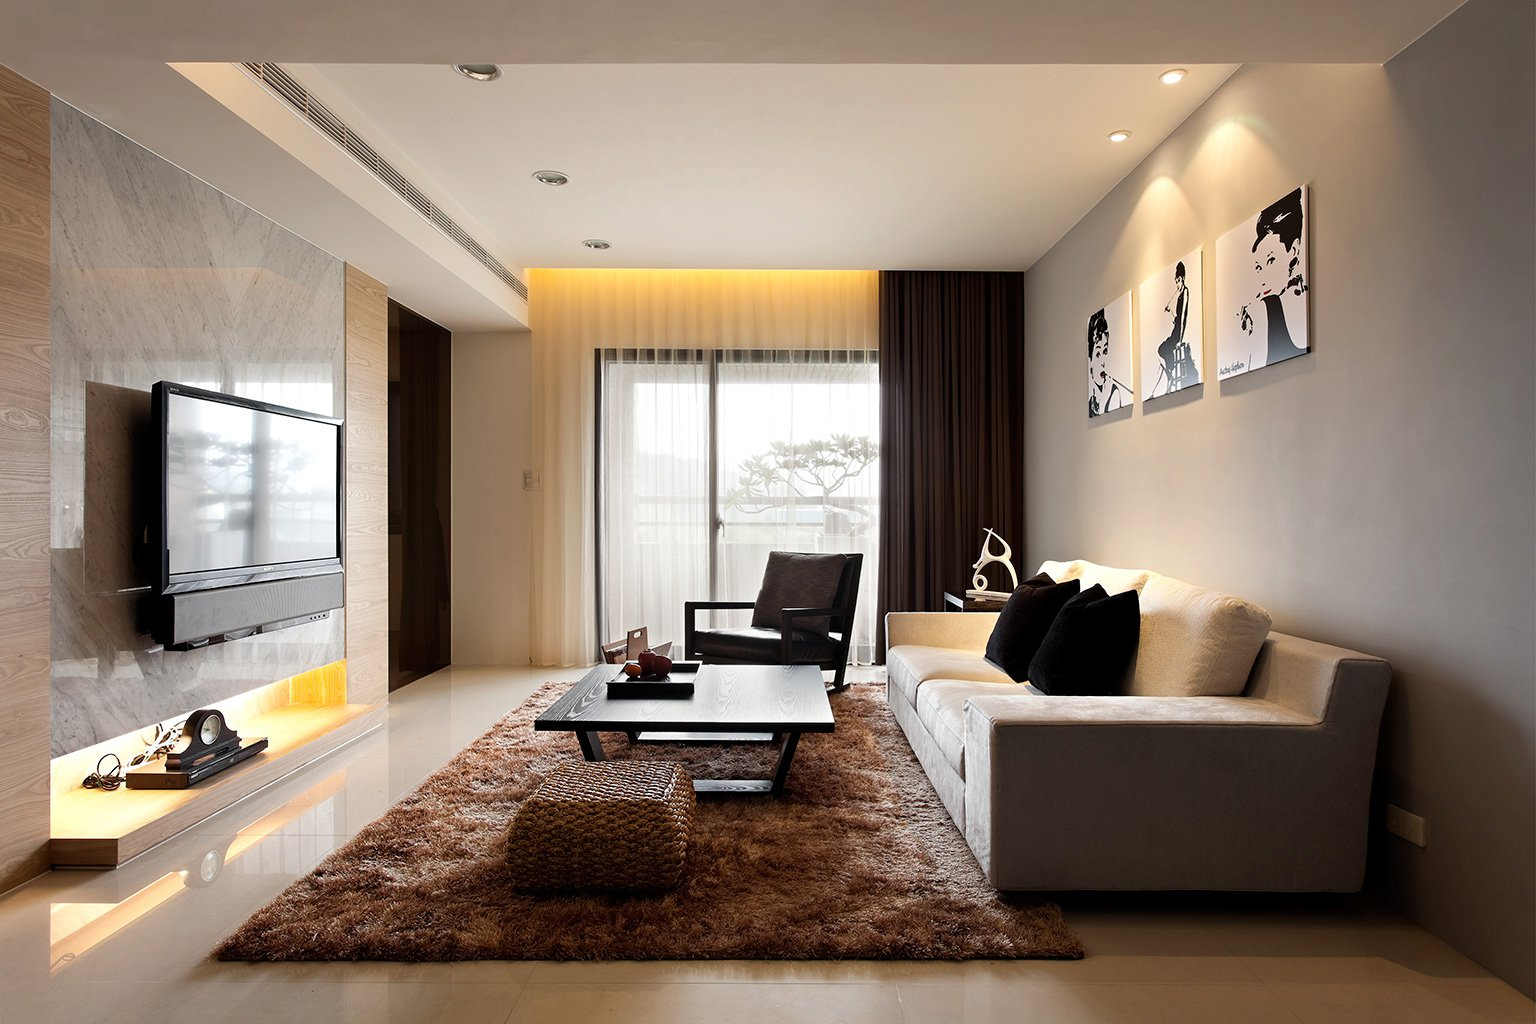 25 Best Modern Living Room Designs Jul 14 2015 222kshares